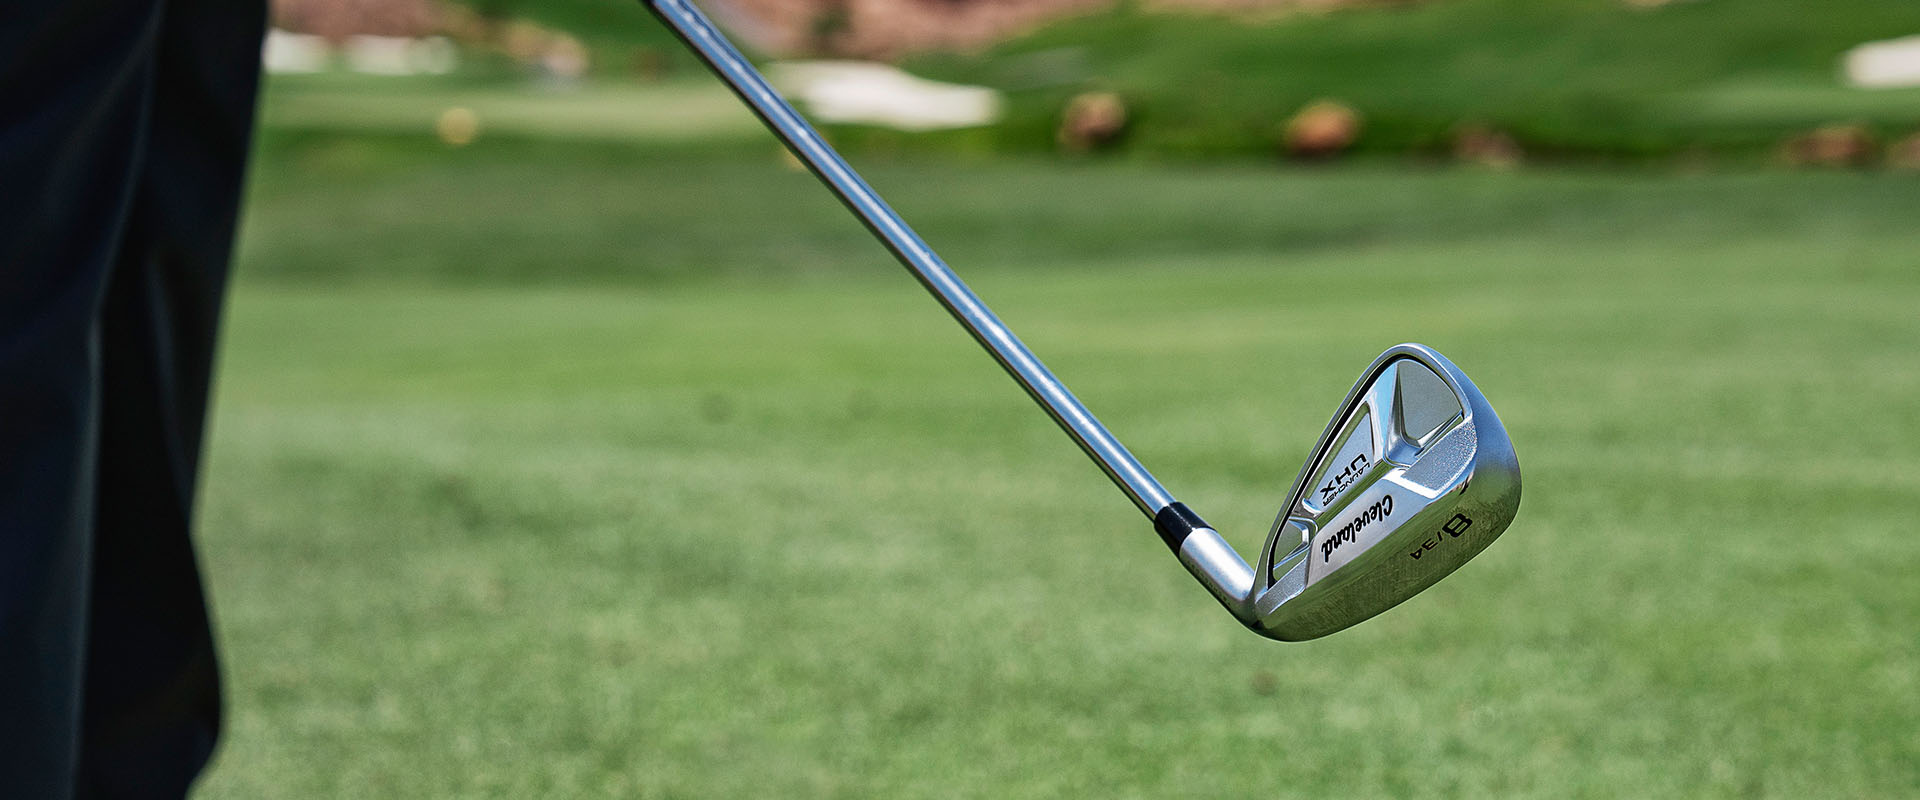 Cleveland Golf Launcher HB Turbo Woods Player Shot